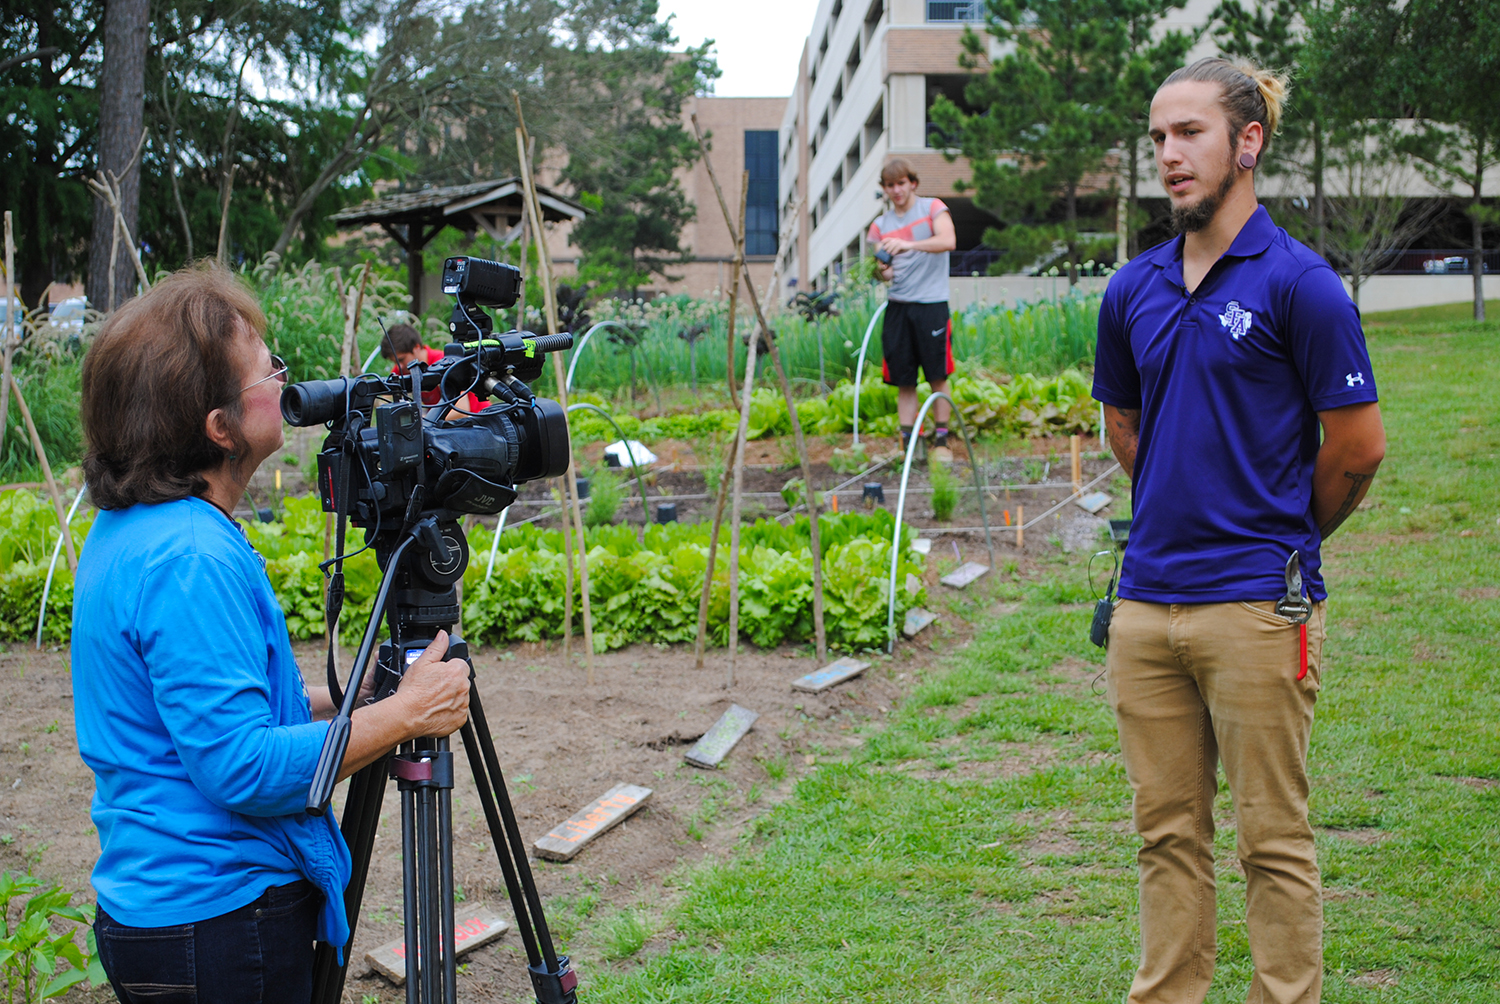 Donna McCollum of KTRE interviews SFA Horticulture student and Team Sprout member Hunter about the food prairies.